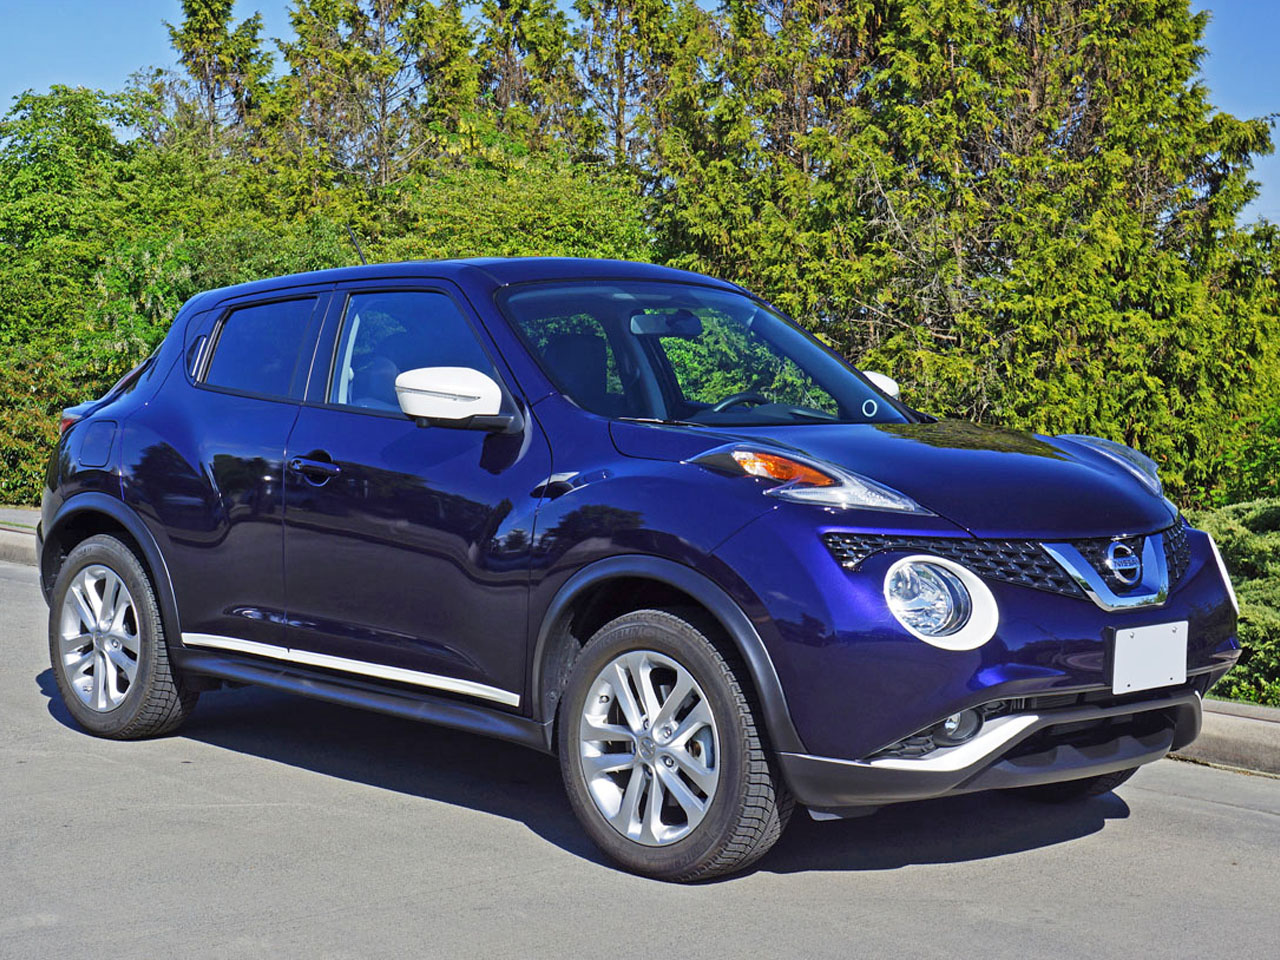 2015 nissan juke sl awd road test review carcostcanada. Black Bedroom Furniture Sets. Home Design Ideas